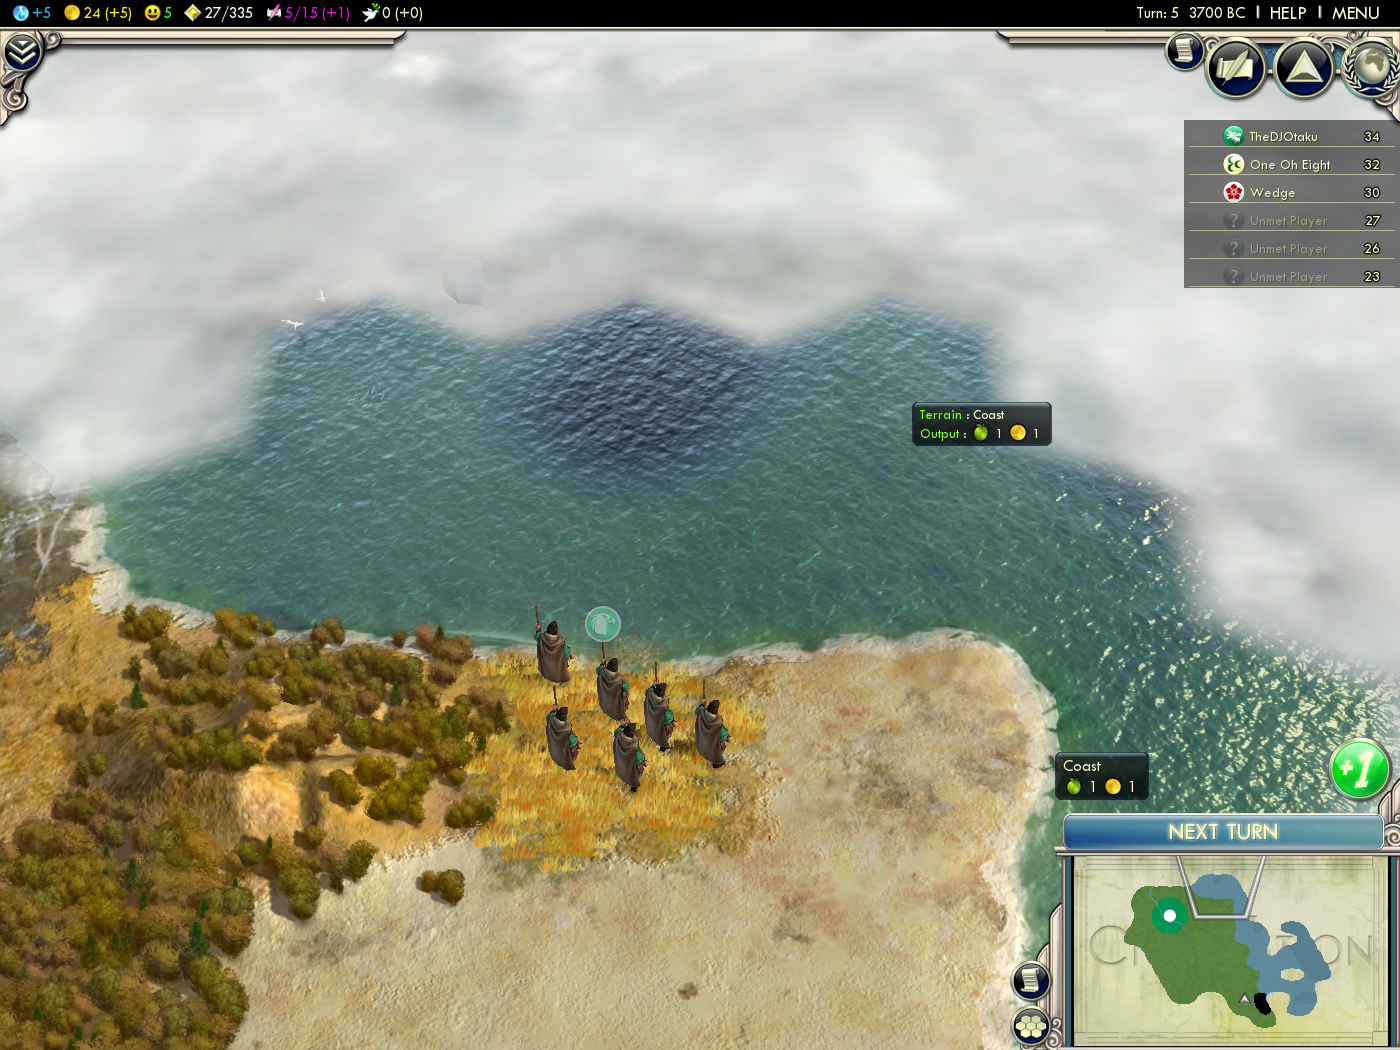 Civilization 5 - against Dan and Dave - Scouts reach the coast - 3700 BC